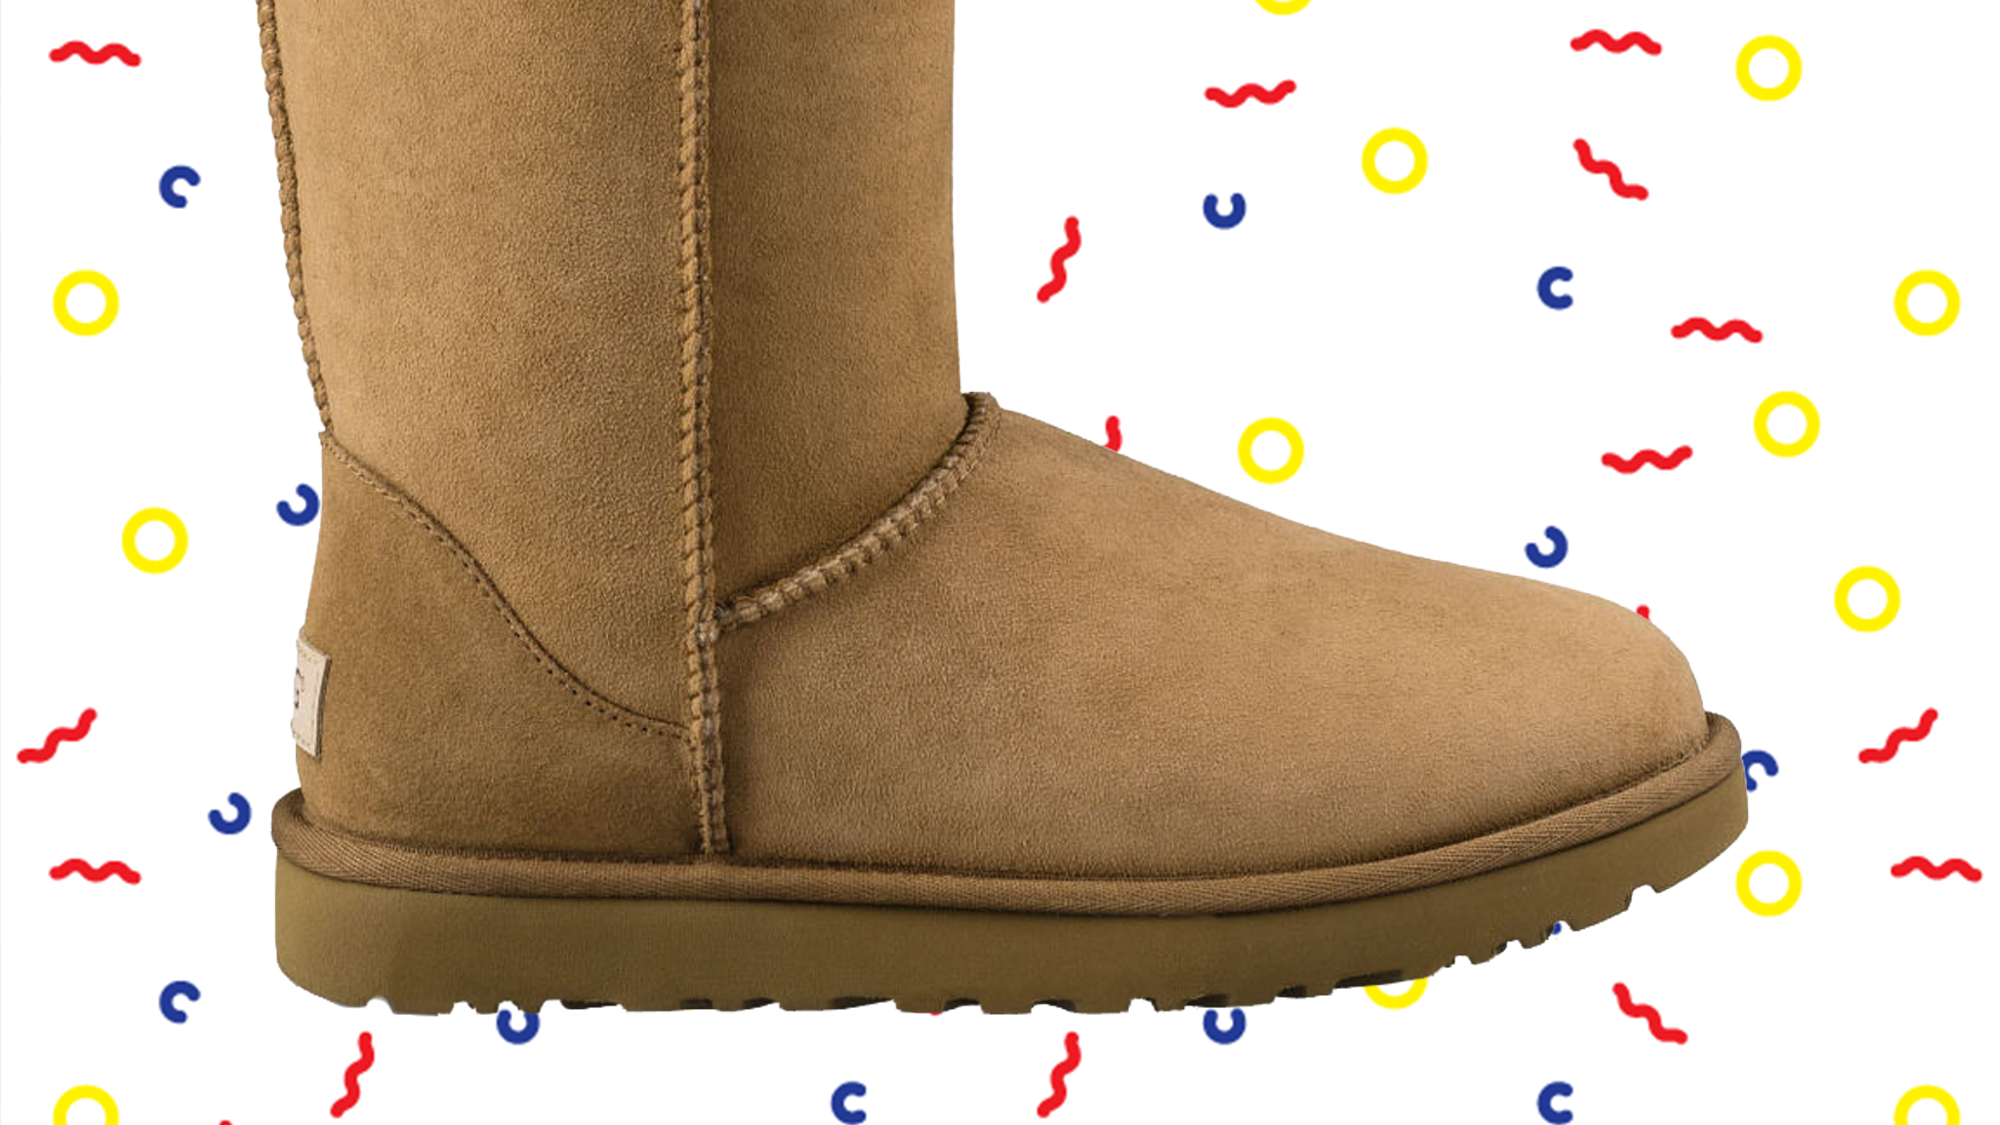 6e46f36401f What's So Different About These New Uggs?